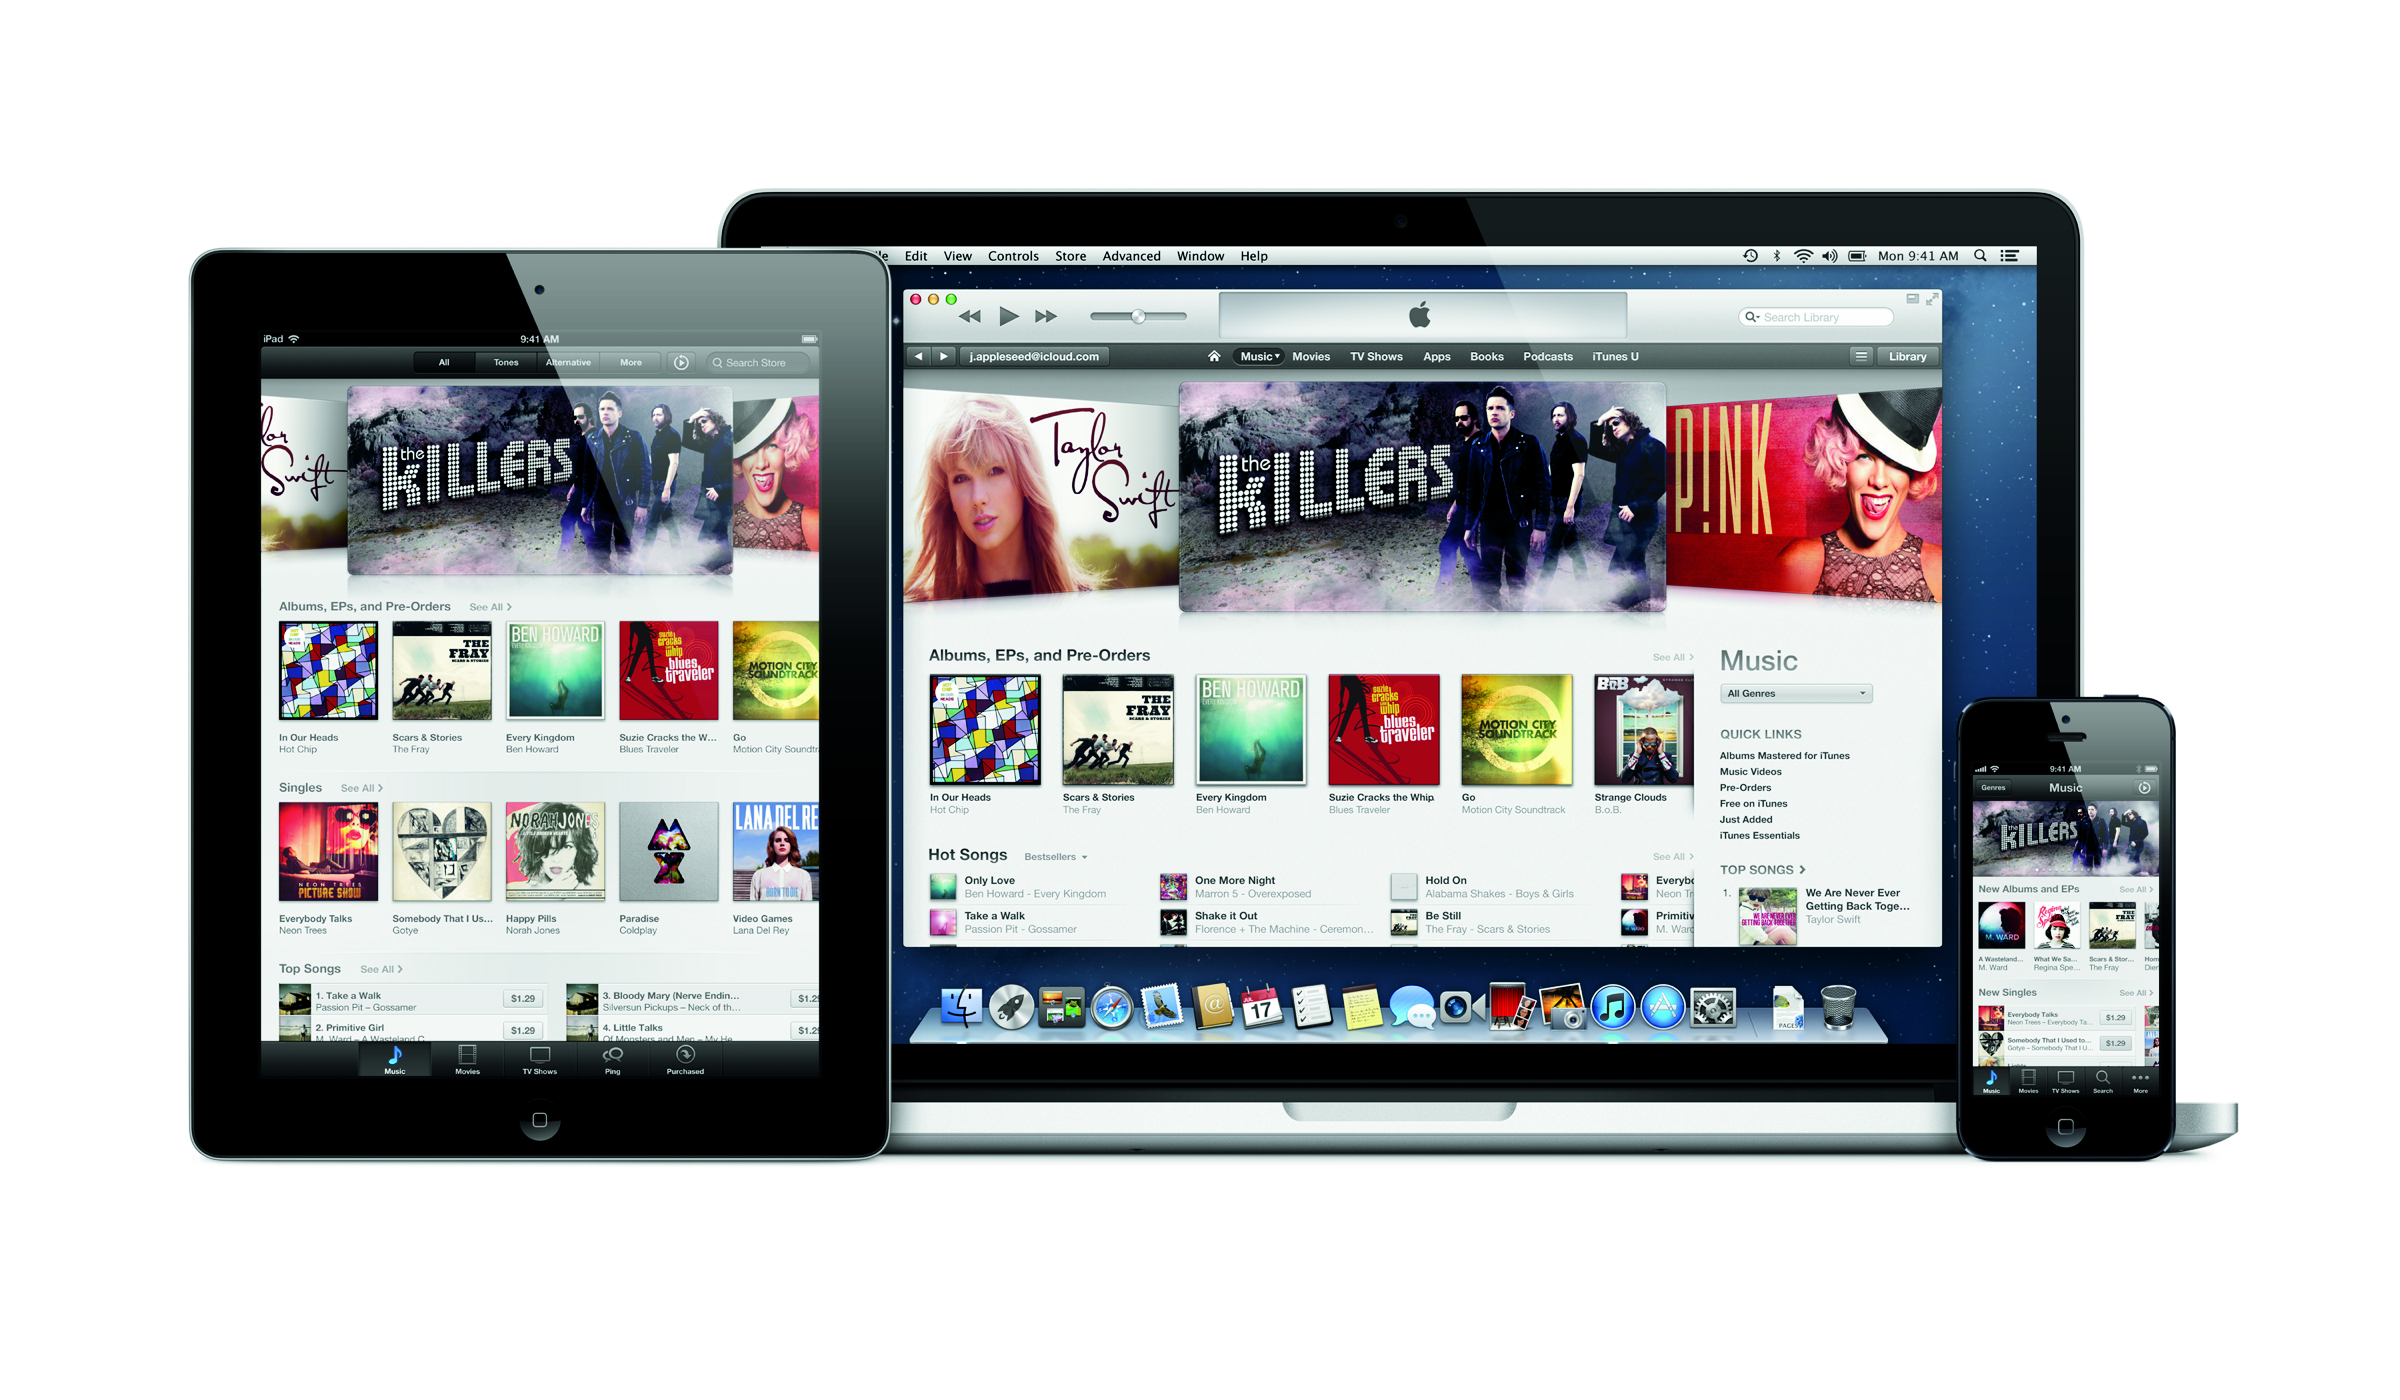 ipad iphone 5 itunes